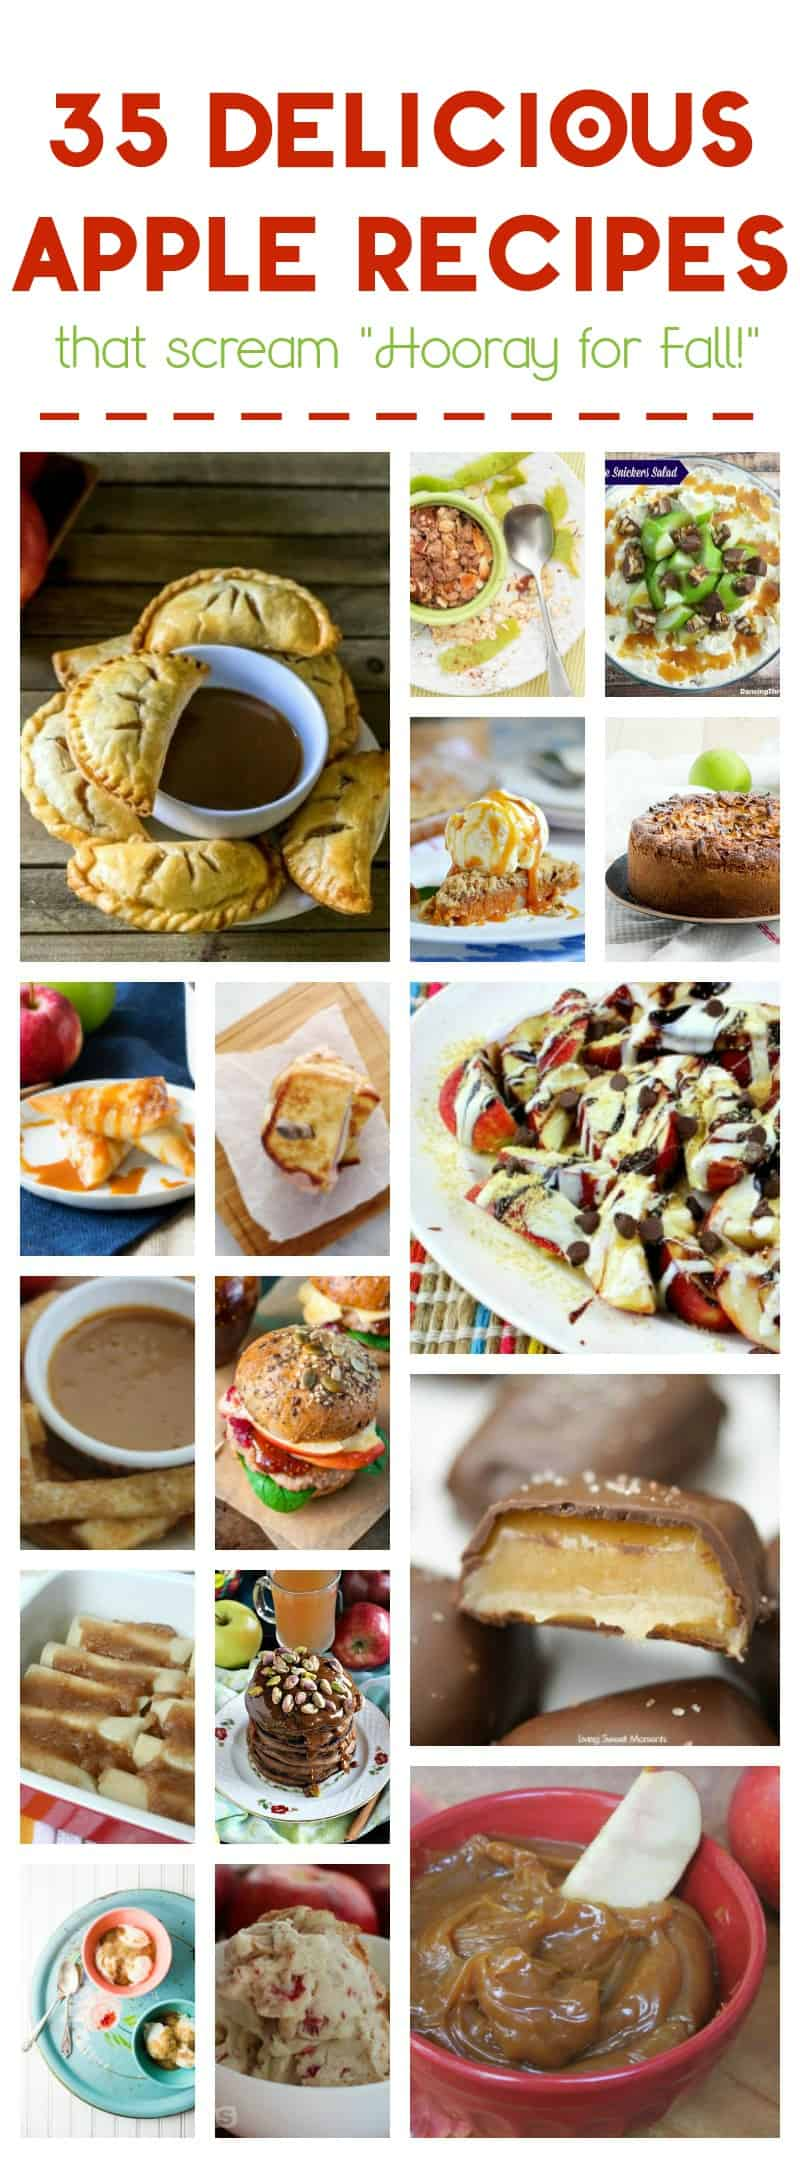 Celebrate fall's harvest with 35 outstandingly delicious apple recipes! From breakfast to dessert (yep, even lunch and dinner), apples are where it's at!